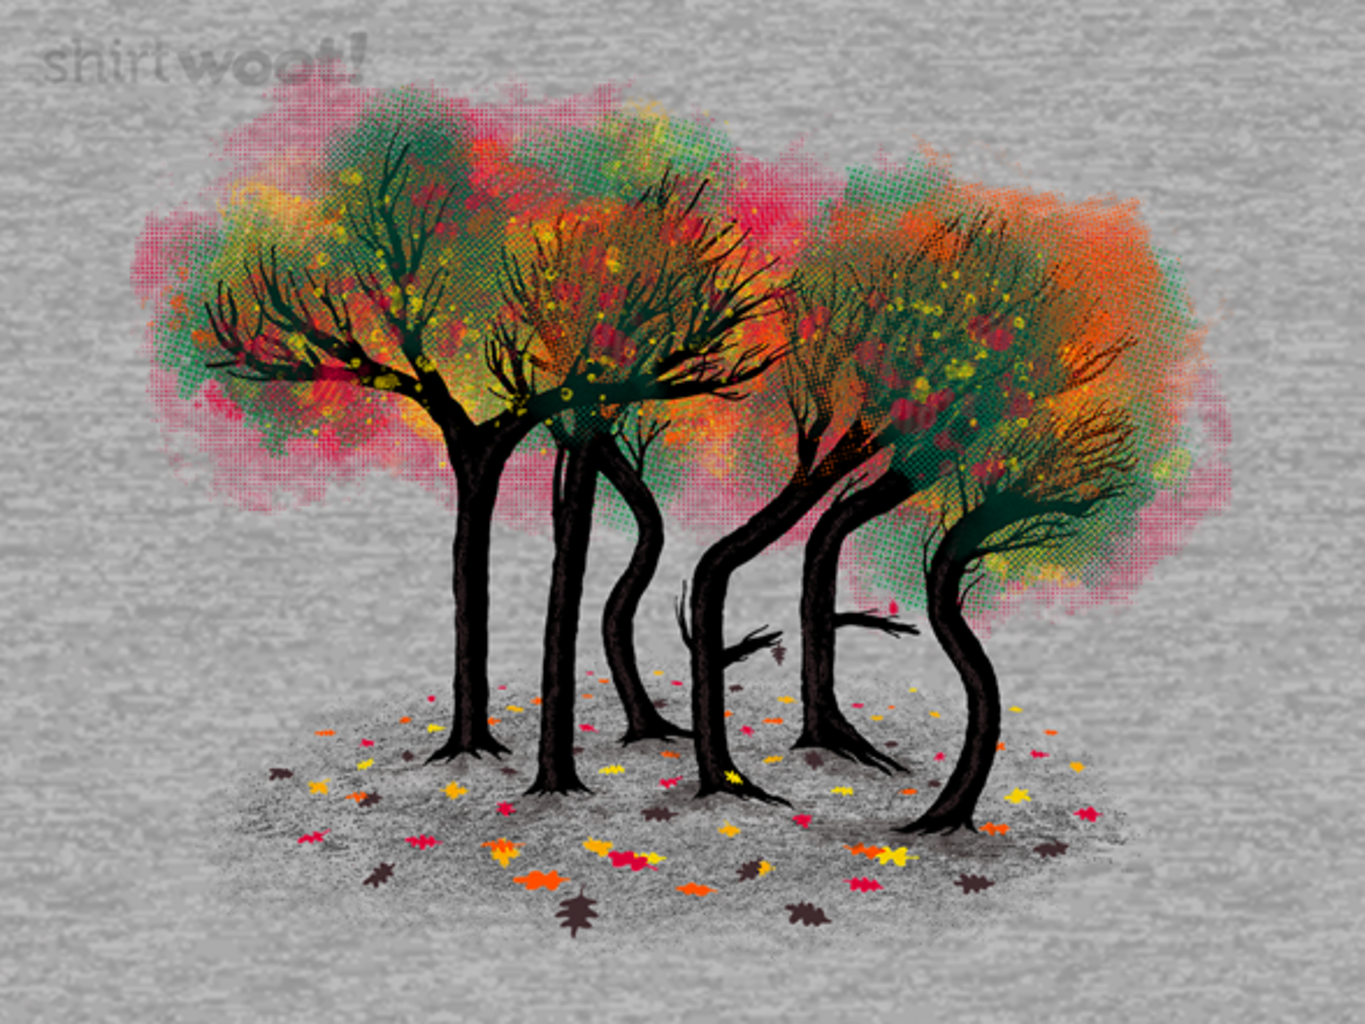 Woot!: TREES